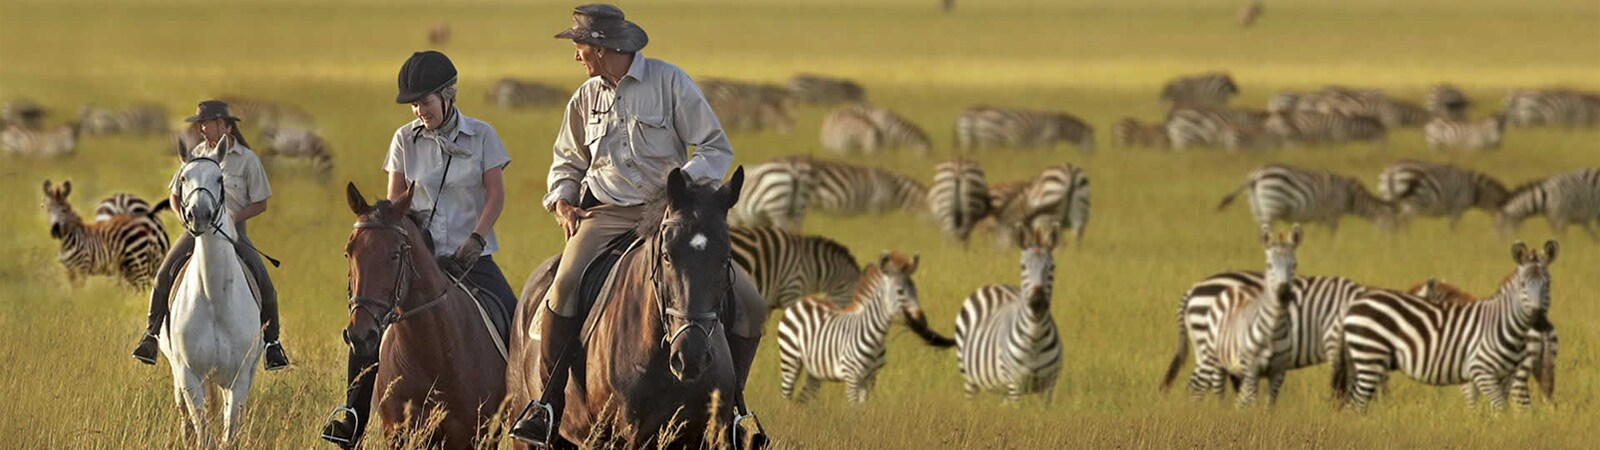 Image of 3 men and women riding horses surrounded by zebra